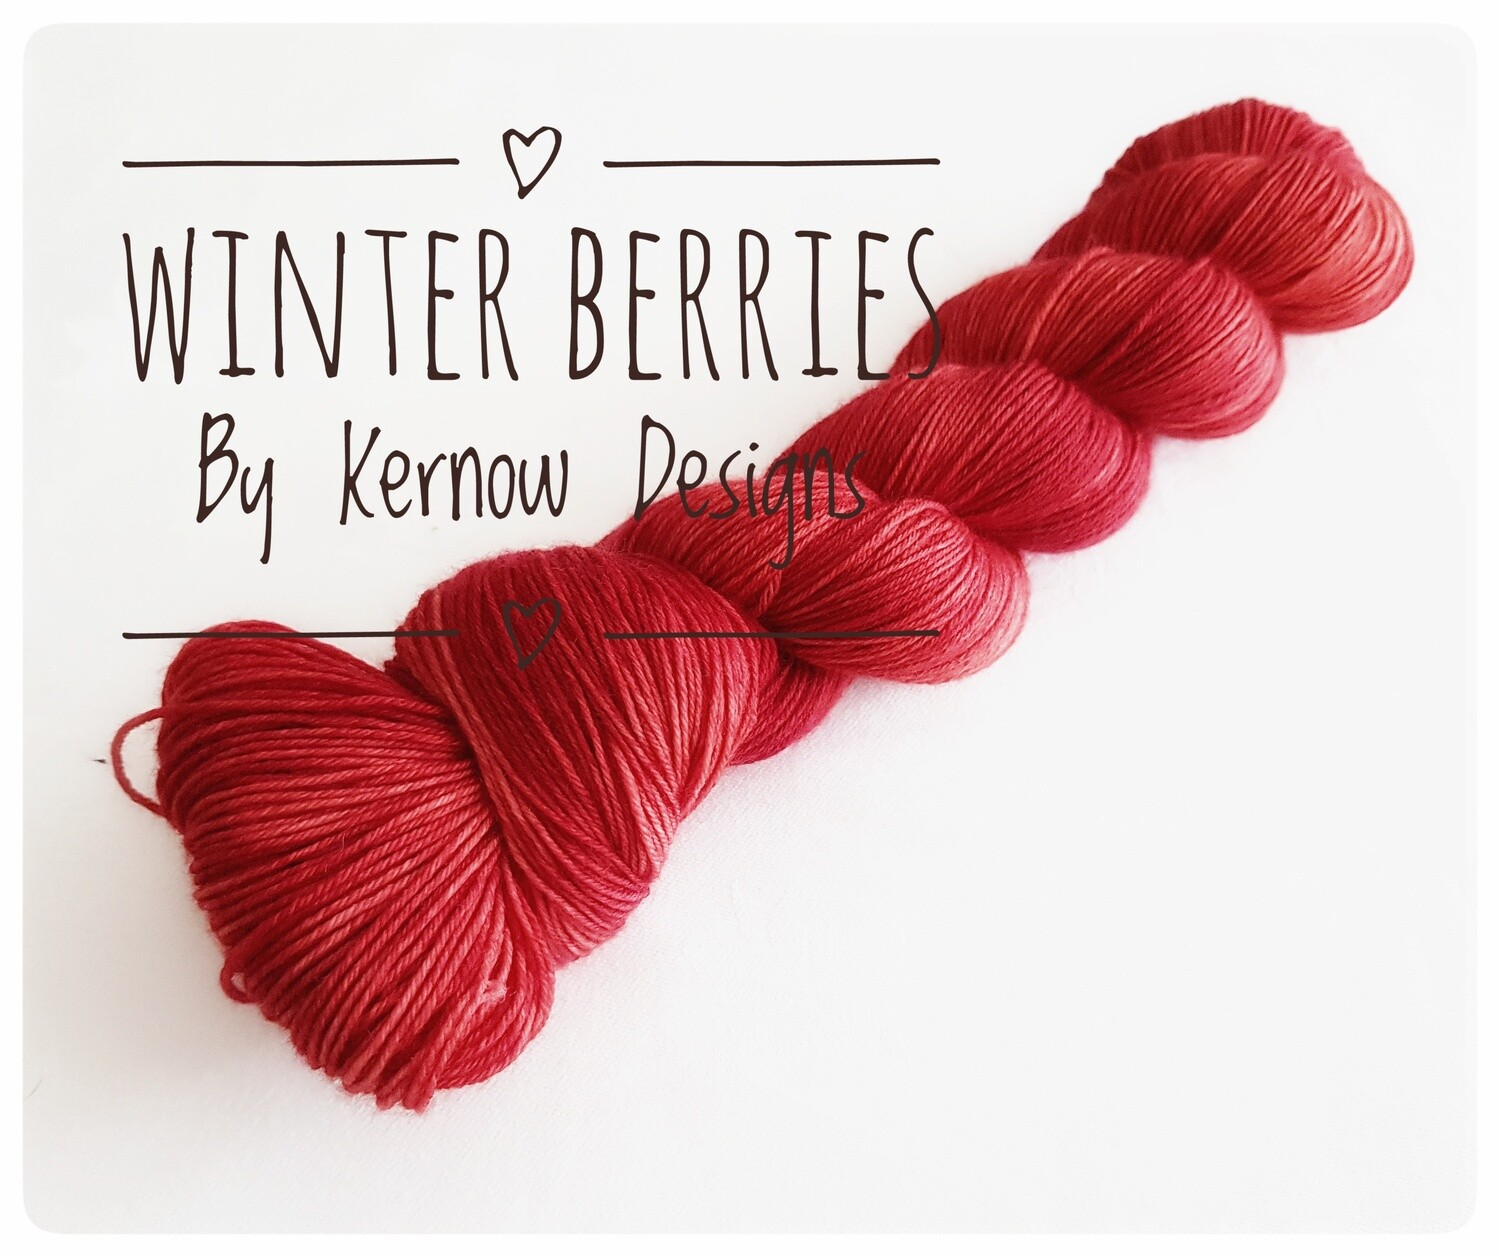 Winter Berries Hand Dyed Yarn